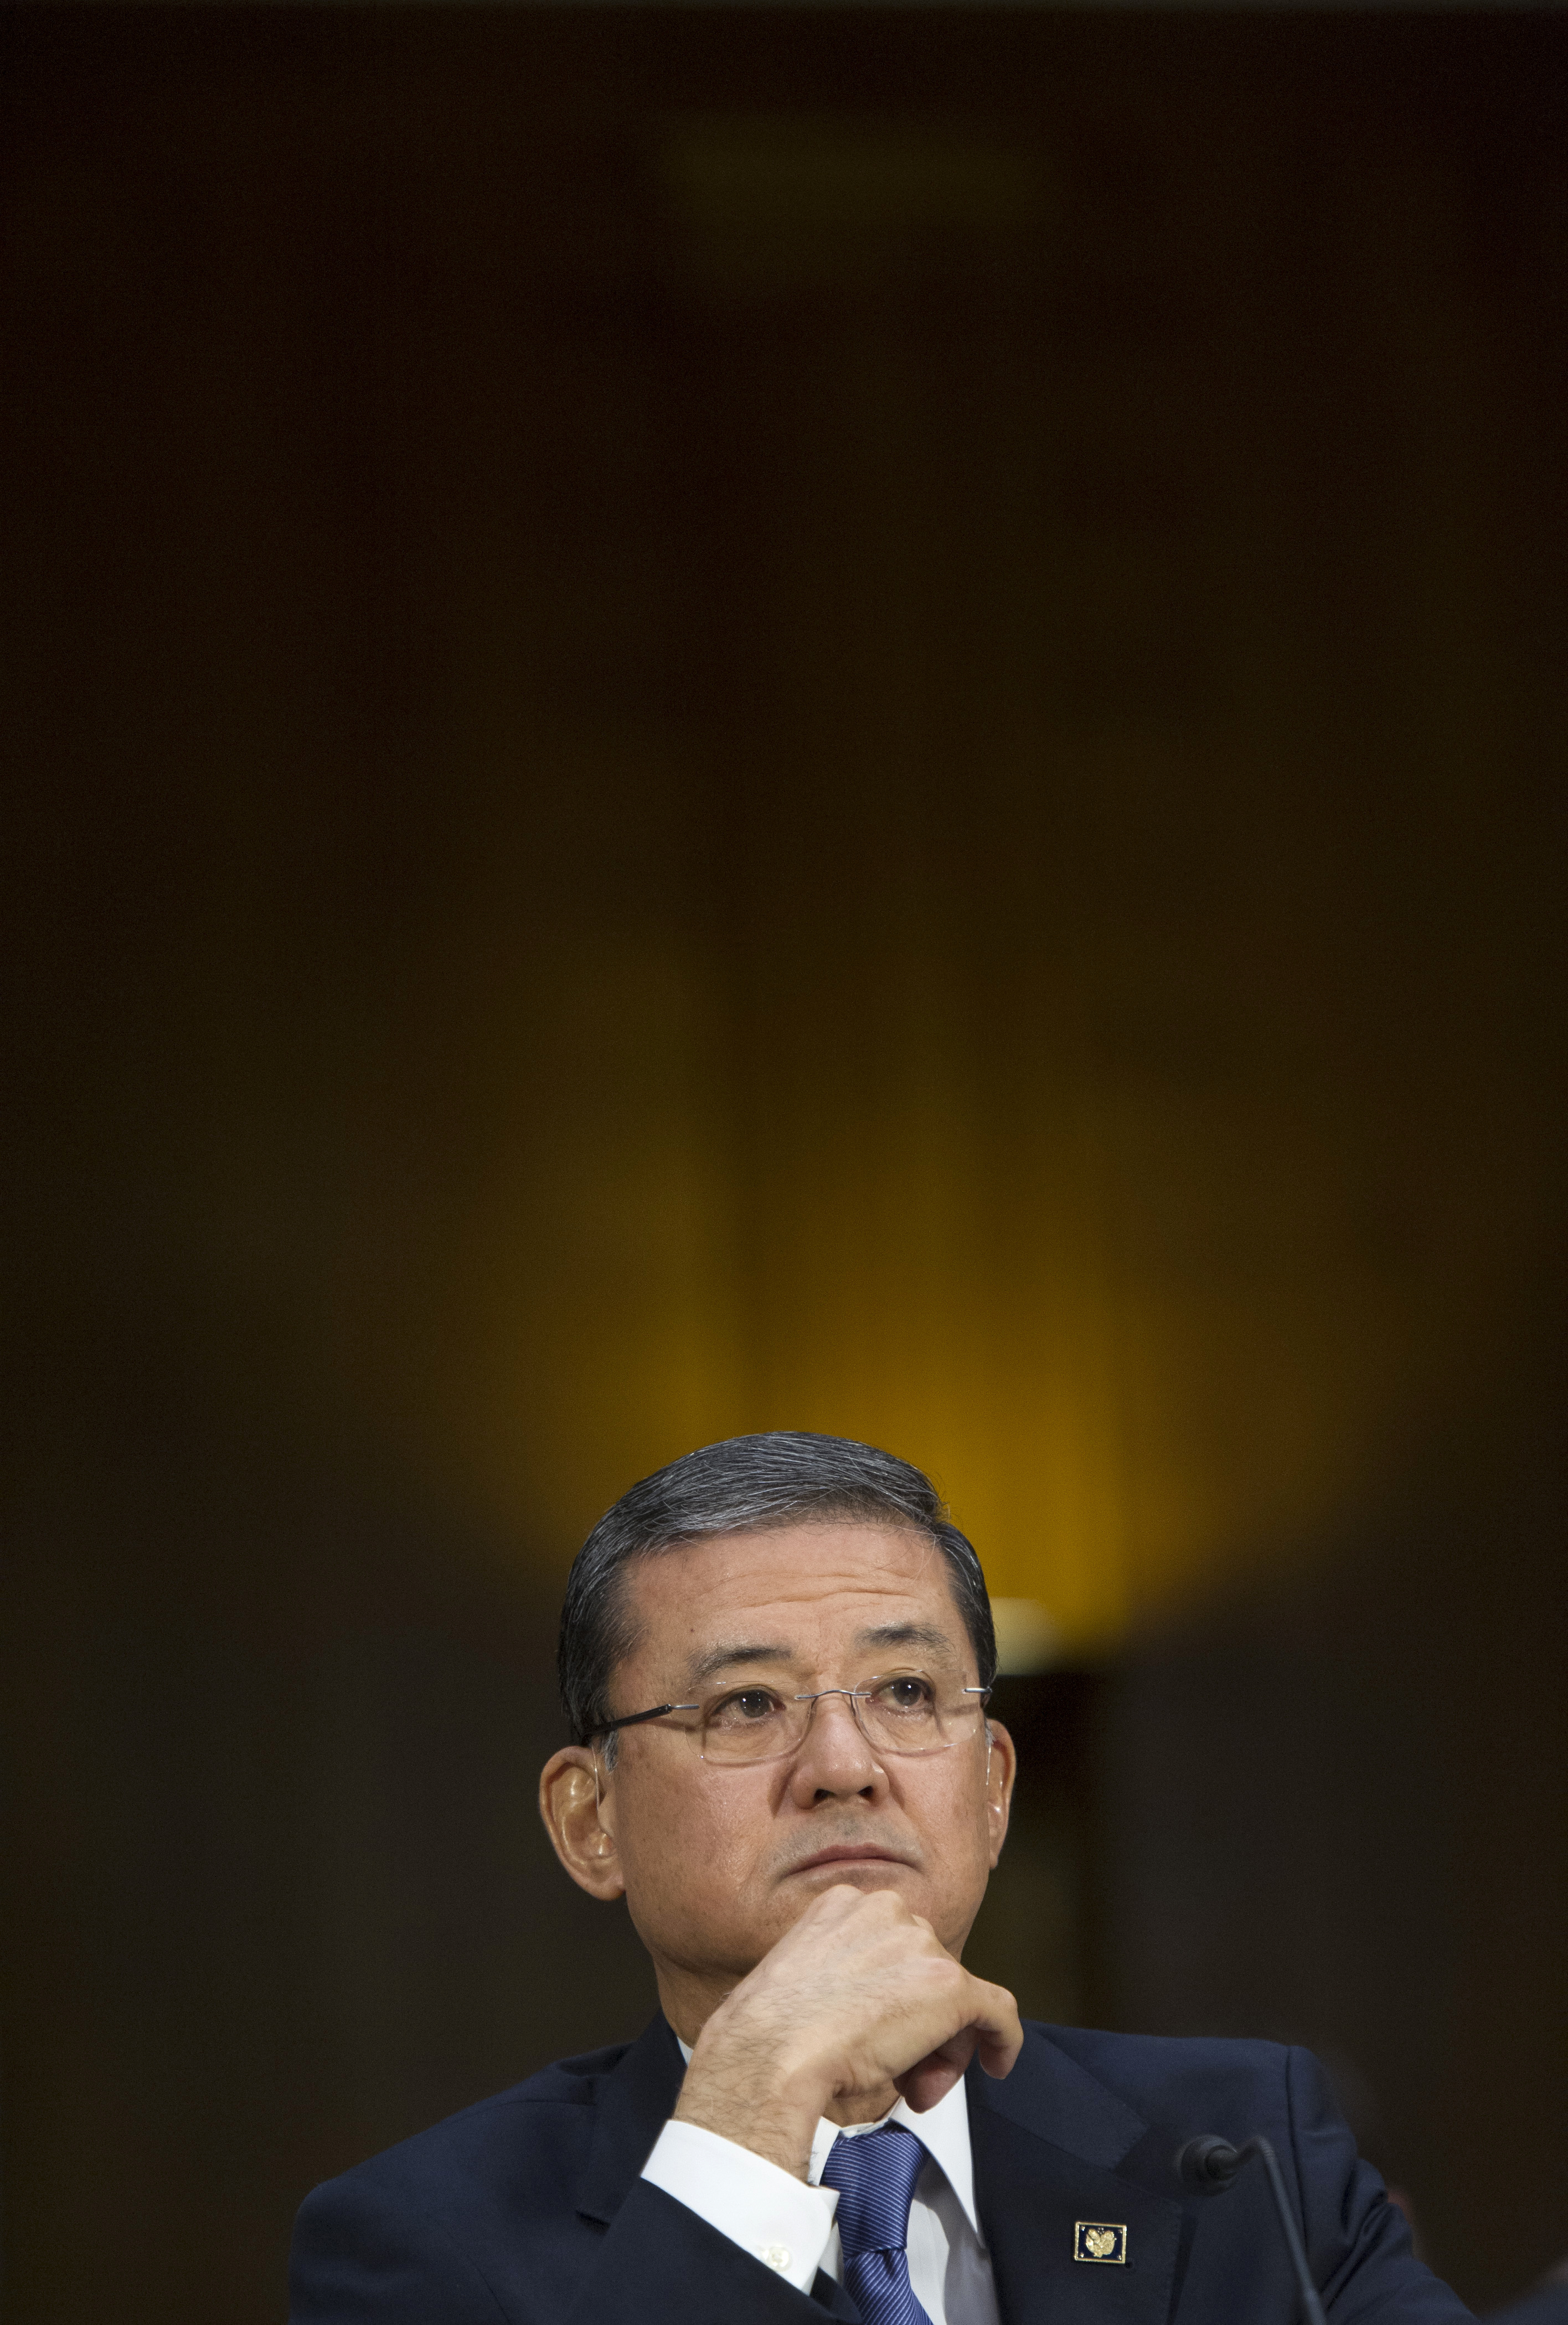 Veterans Affairs Secretary Eric Shinseki testifies on Capitol Hill in Washington, D.C., on May 15, 2014, before the Senate Veterans Affairs Committee hearing to examine the state of Veterans Affairs health care.